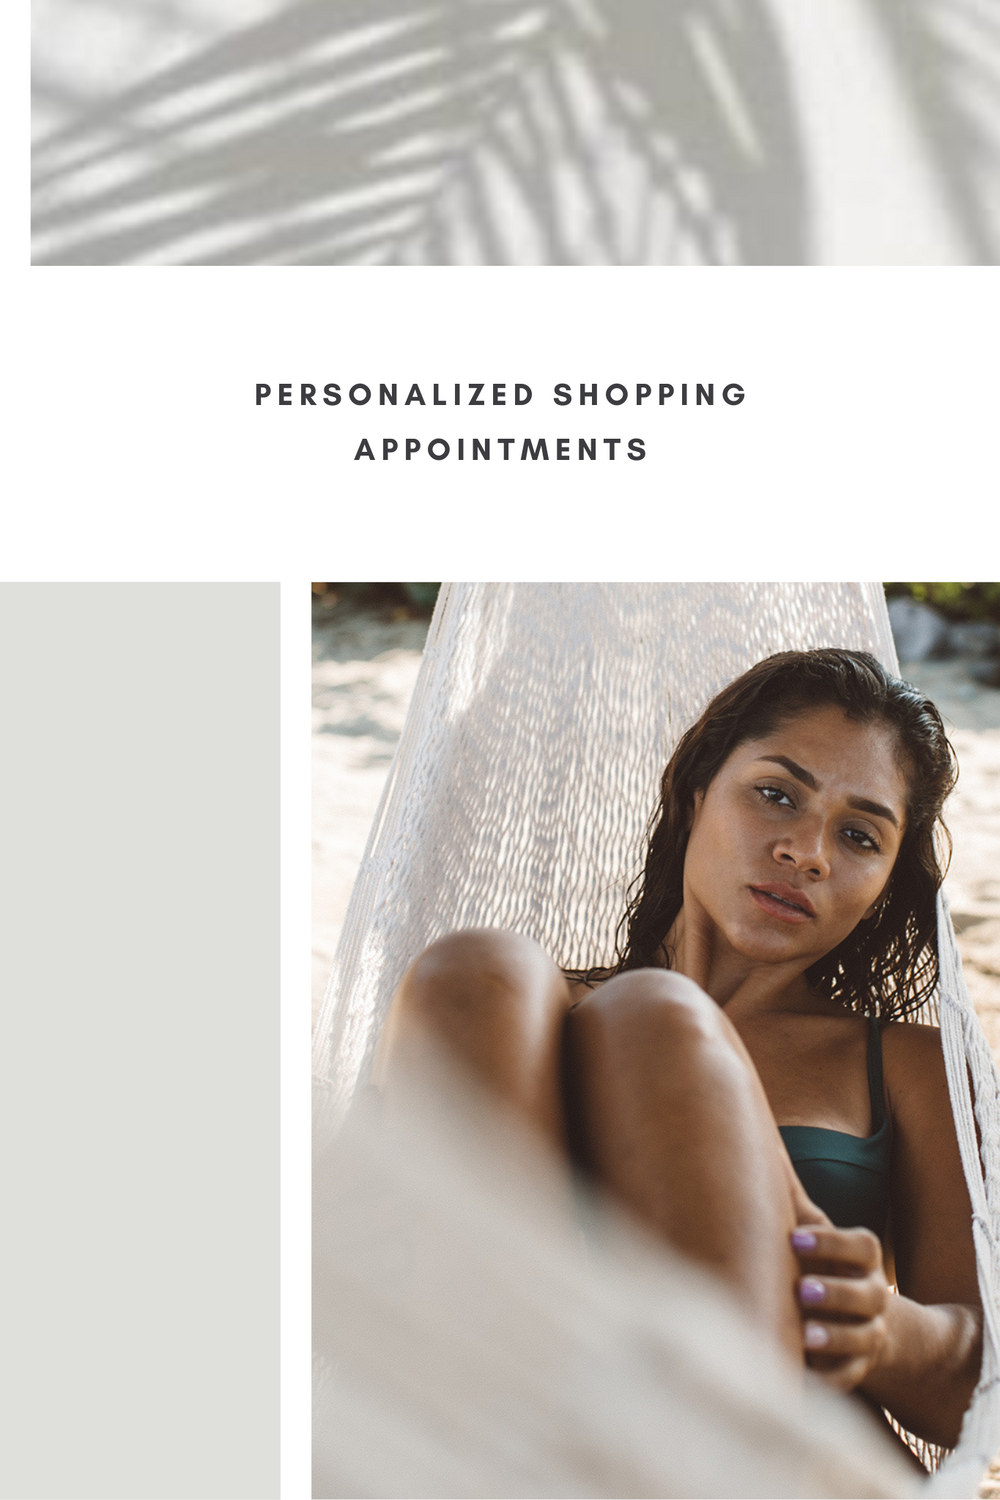 Personalized shopping appointment - Free